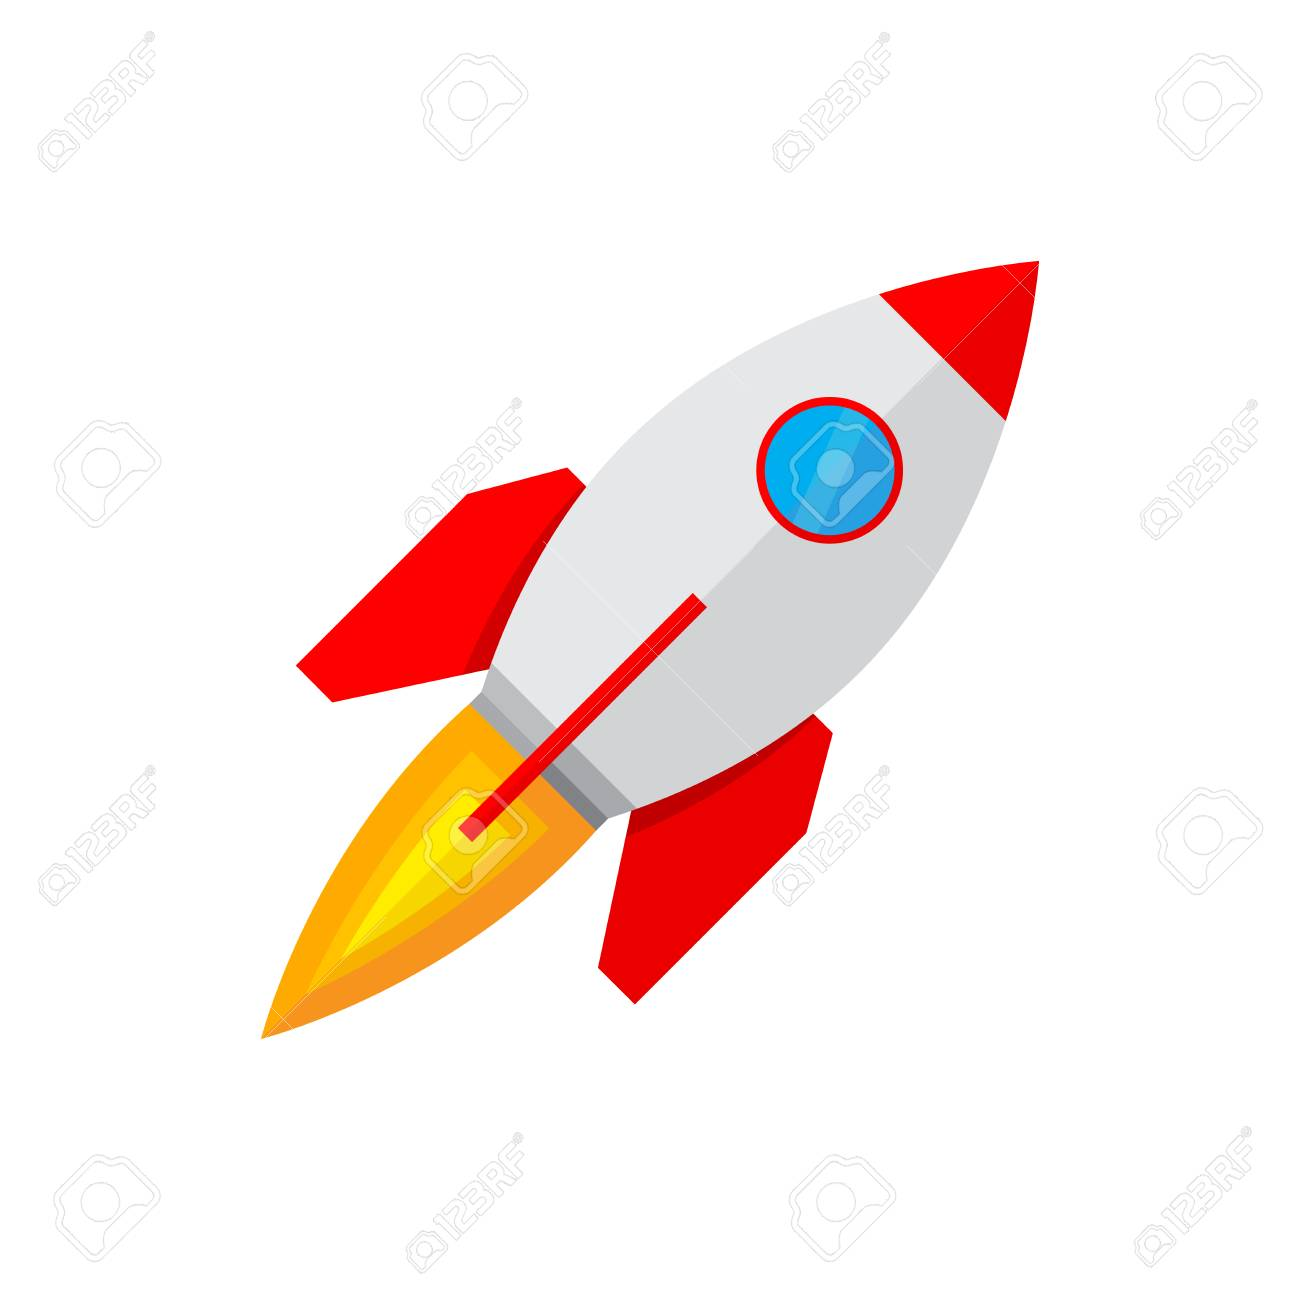 Colored Rocket Ship Icon In Flat Design Simple Spaceship Icon